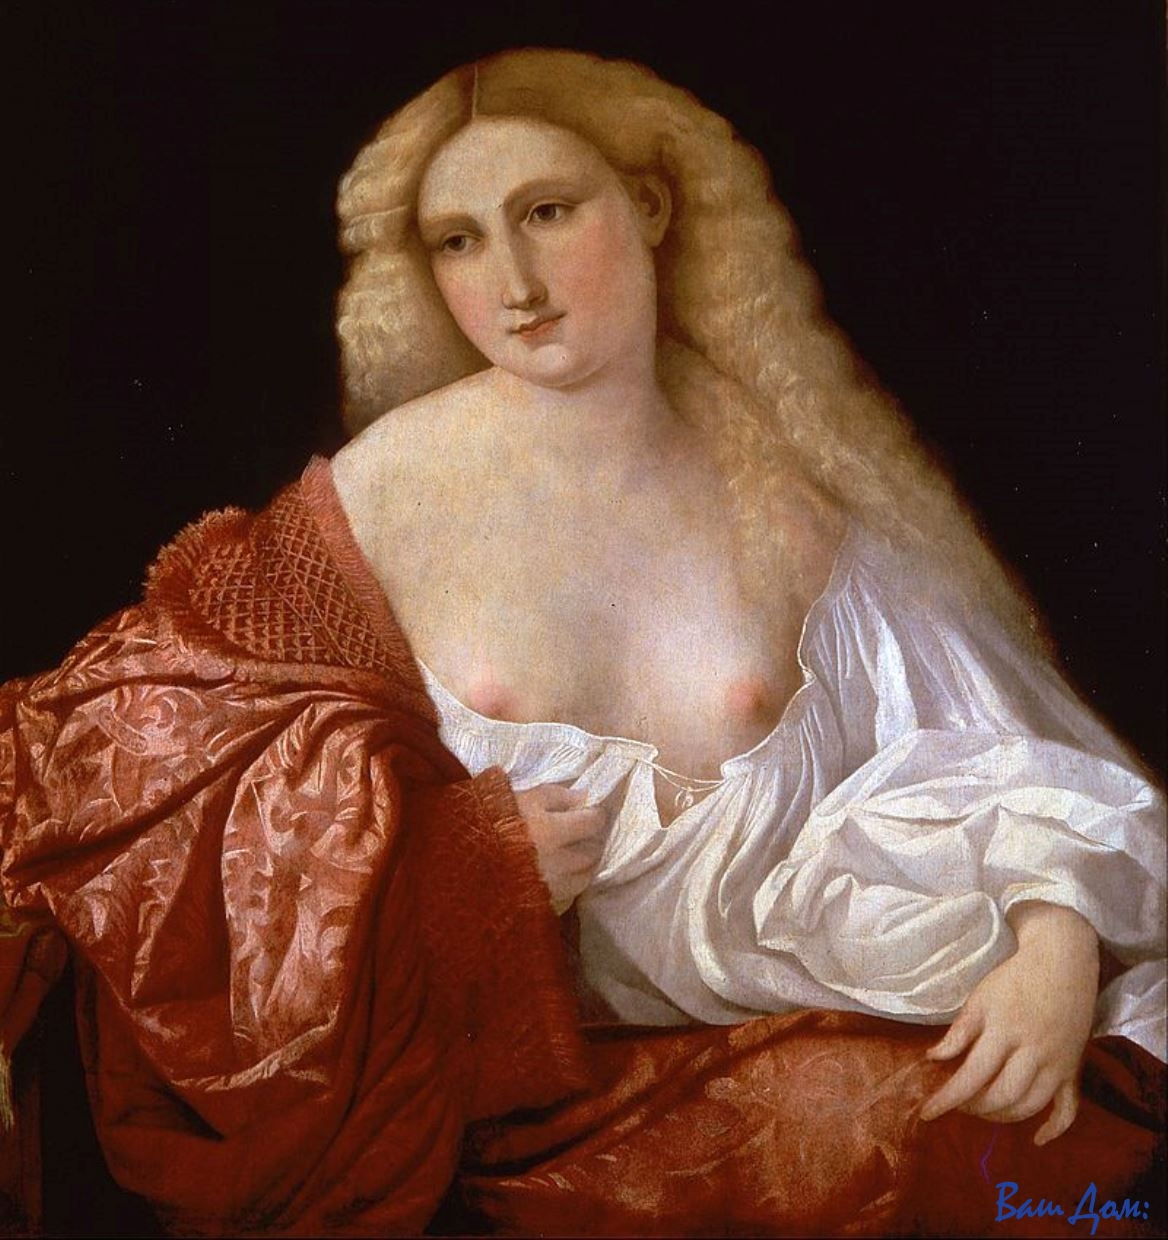 Jacopo_Negretti_called_Palma_the_Elder_-_Portrait_of_a_Woman_known_as_Portrait_of_a_Courtesan_-_Google_Art_Project